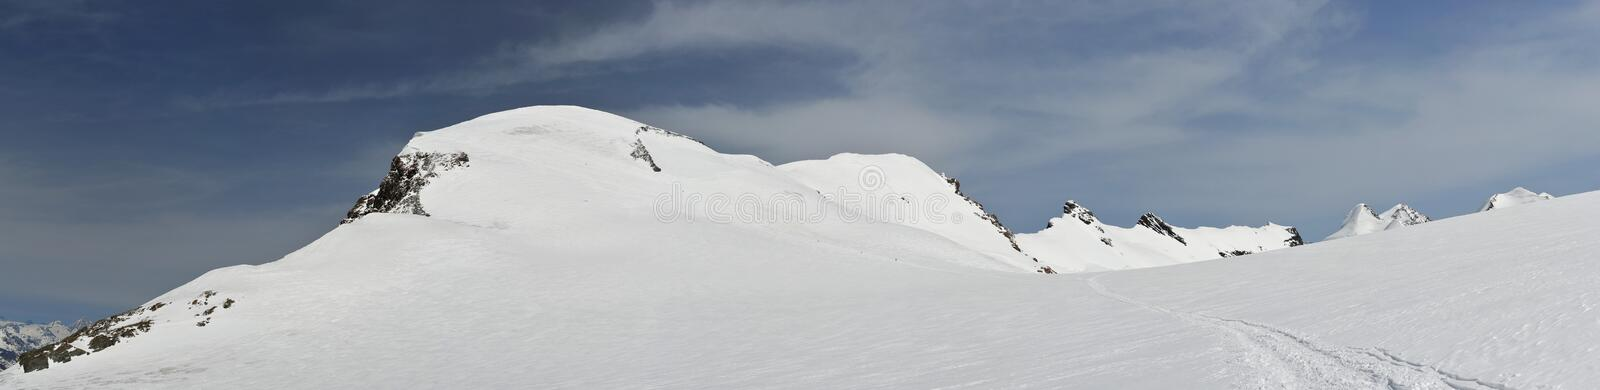 Panorama of snowy 4000-meter-peaks royalty free stock images